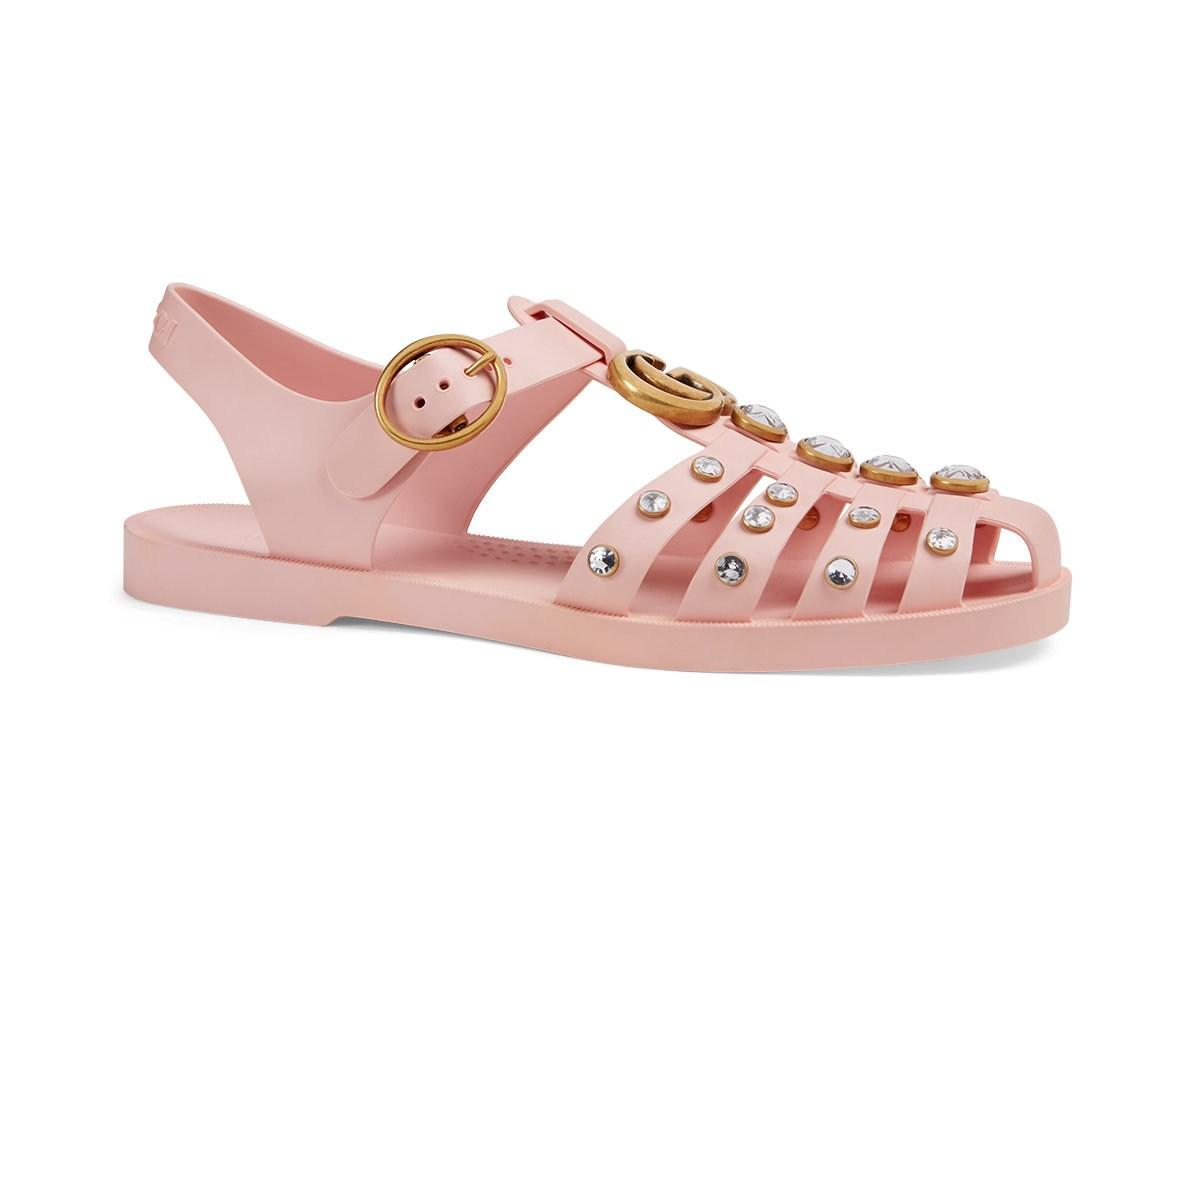 333ae88048ad Lyst - Gucci Crystal-embellished Rubber Sandals in Pink